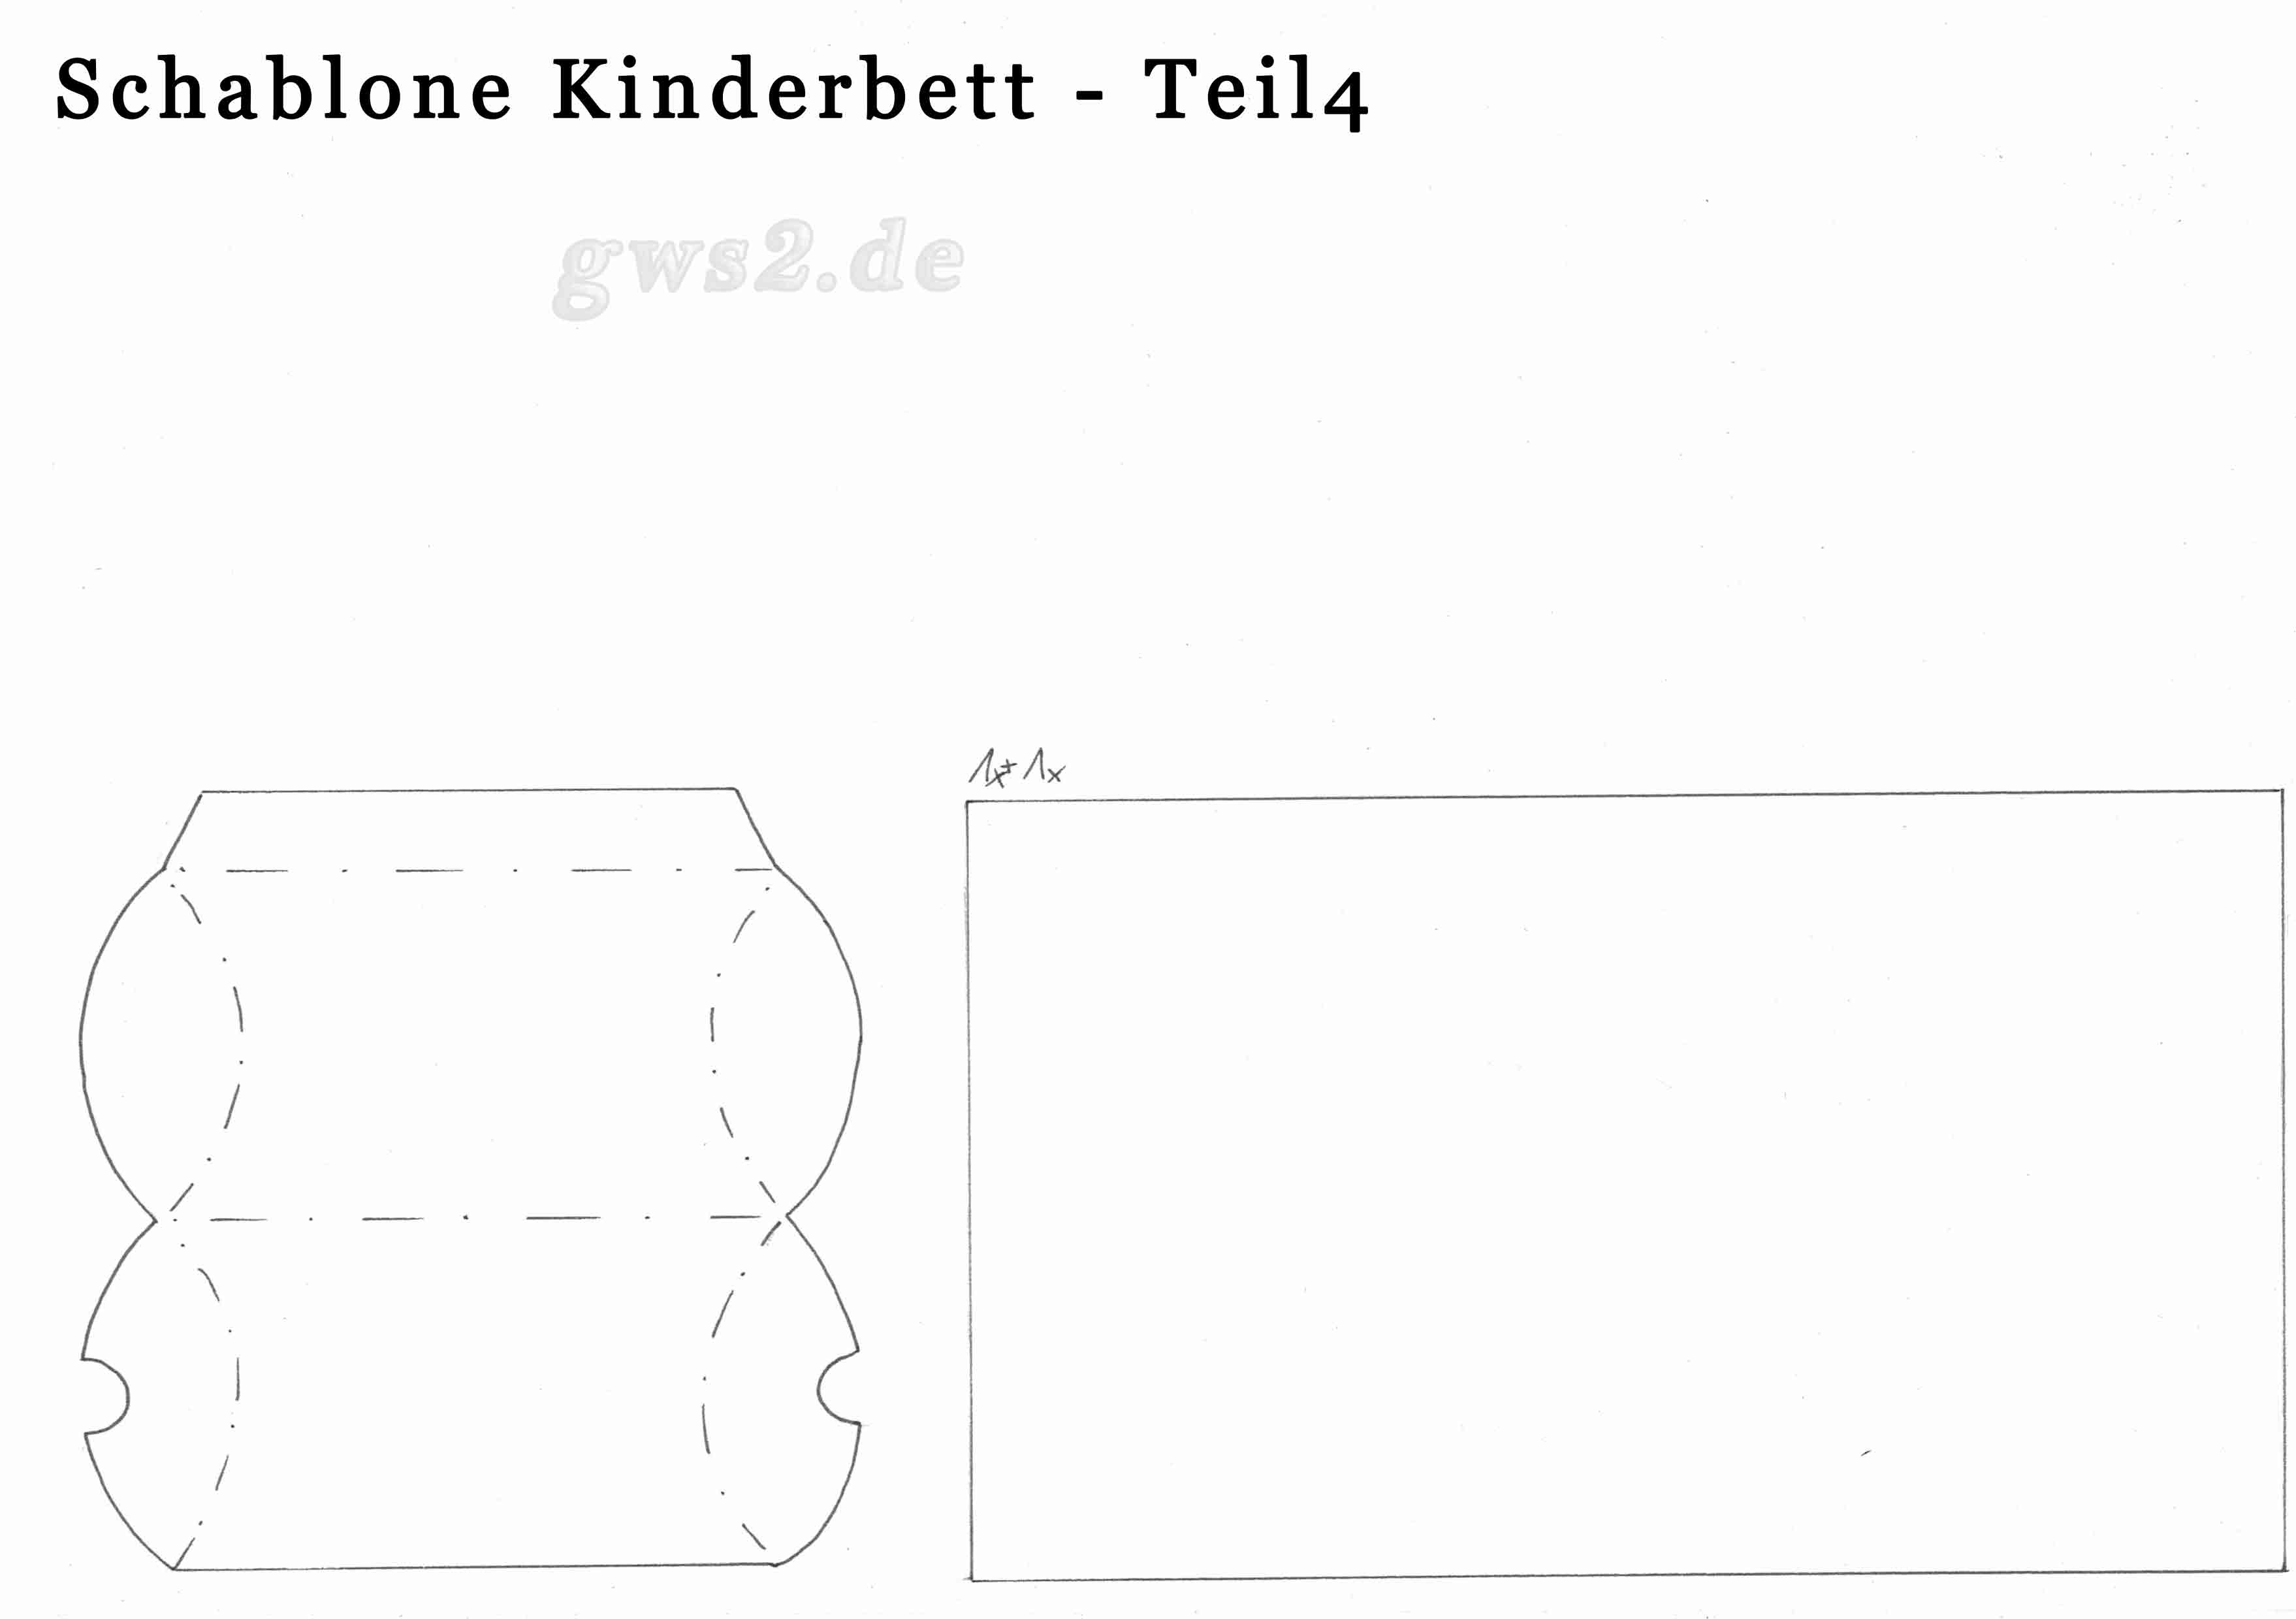 kinderbett aus papier basteln. Black Bedroom Furniture Sets. Home Design Ideas